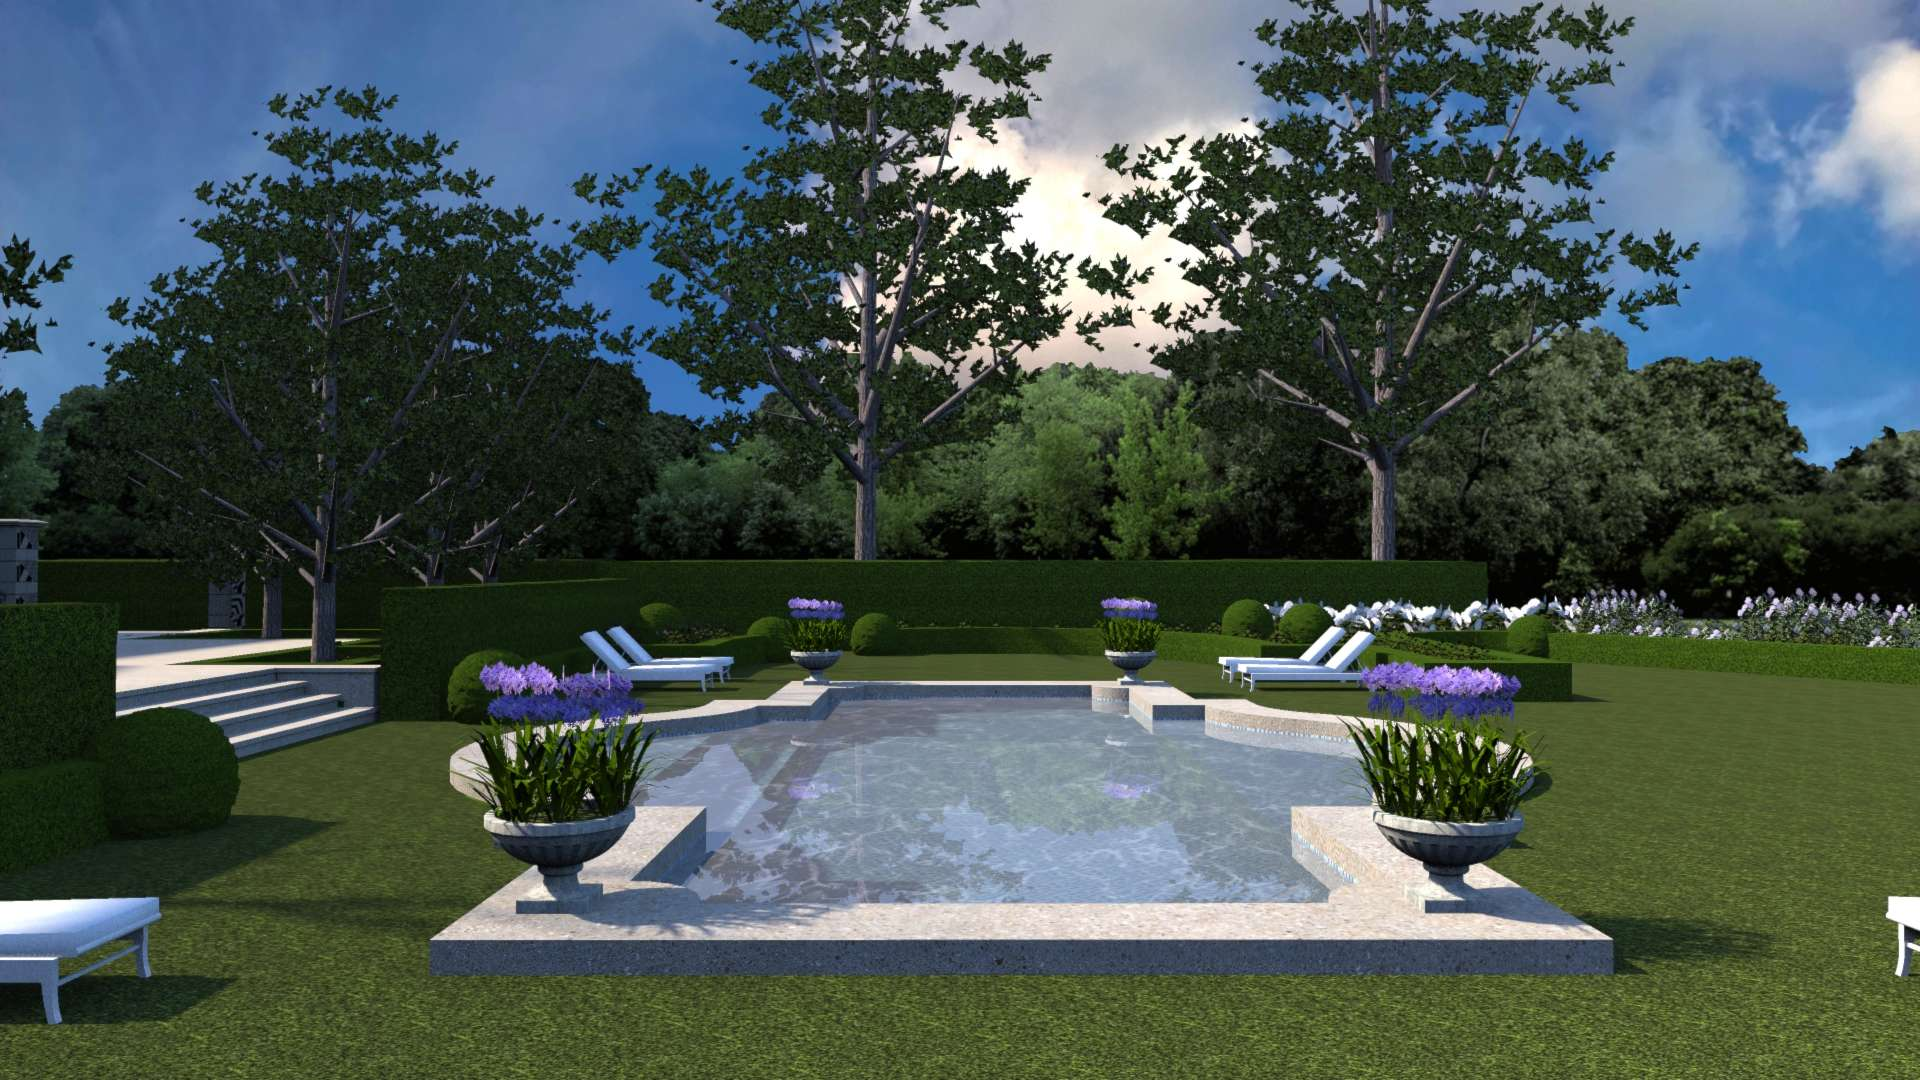 Formal french-inspireid pool with Longshadow planters planted with agapanthus